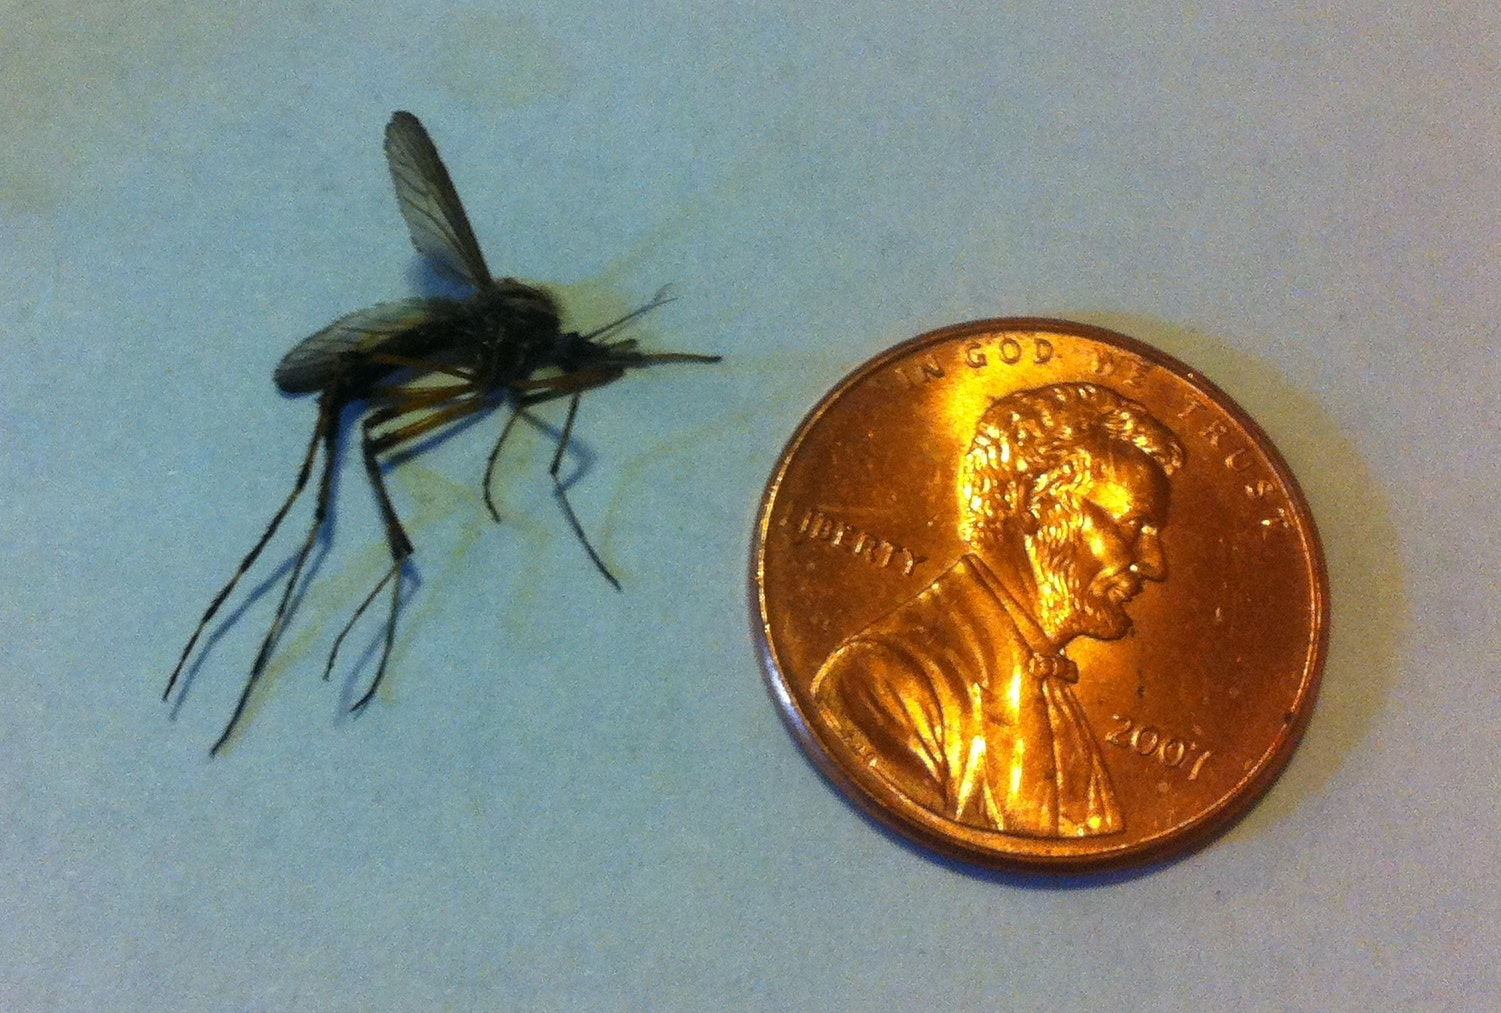 Giant mosquitoes flourish in floodwaters that hurricanes leave behind